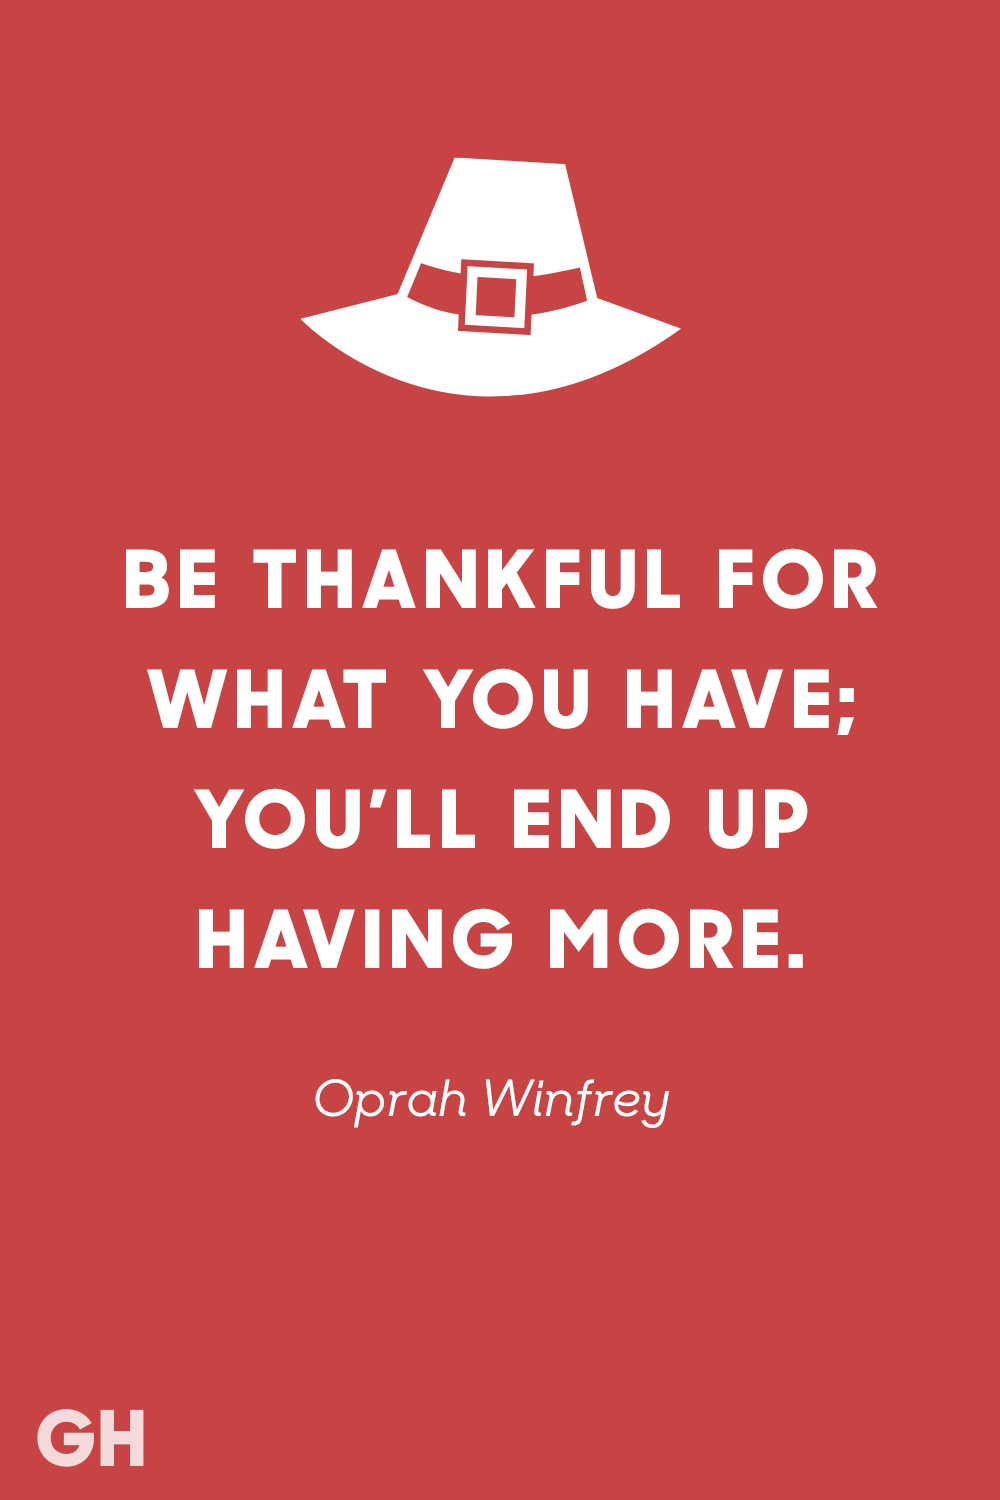 Inspirational Slogans 15 Best Thanksgiving Quotes  Inspirational And Funny Quotes About